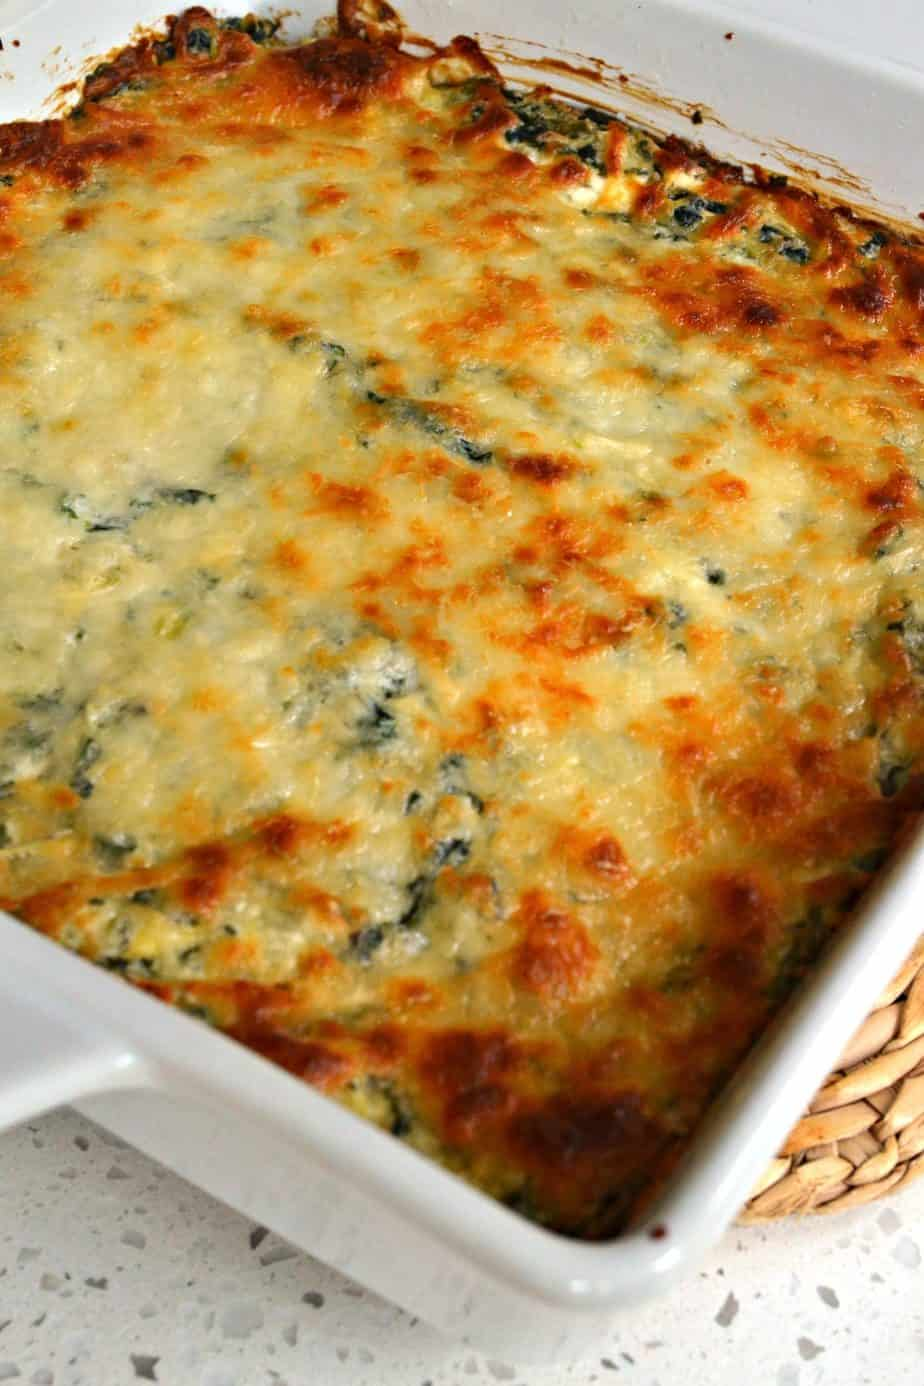 A delicious fun and easy hot Spinach Artichoke Dip prepped in less than ten minutes.